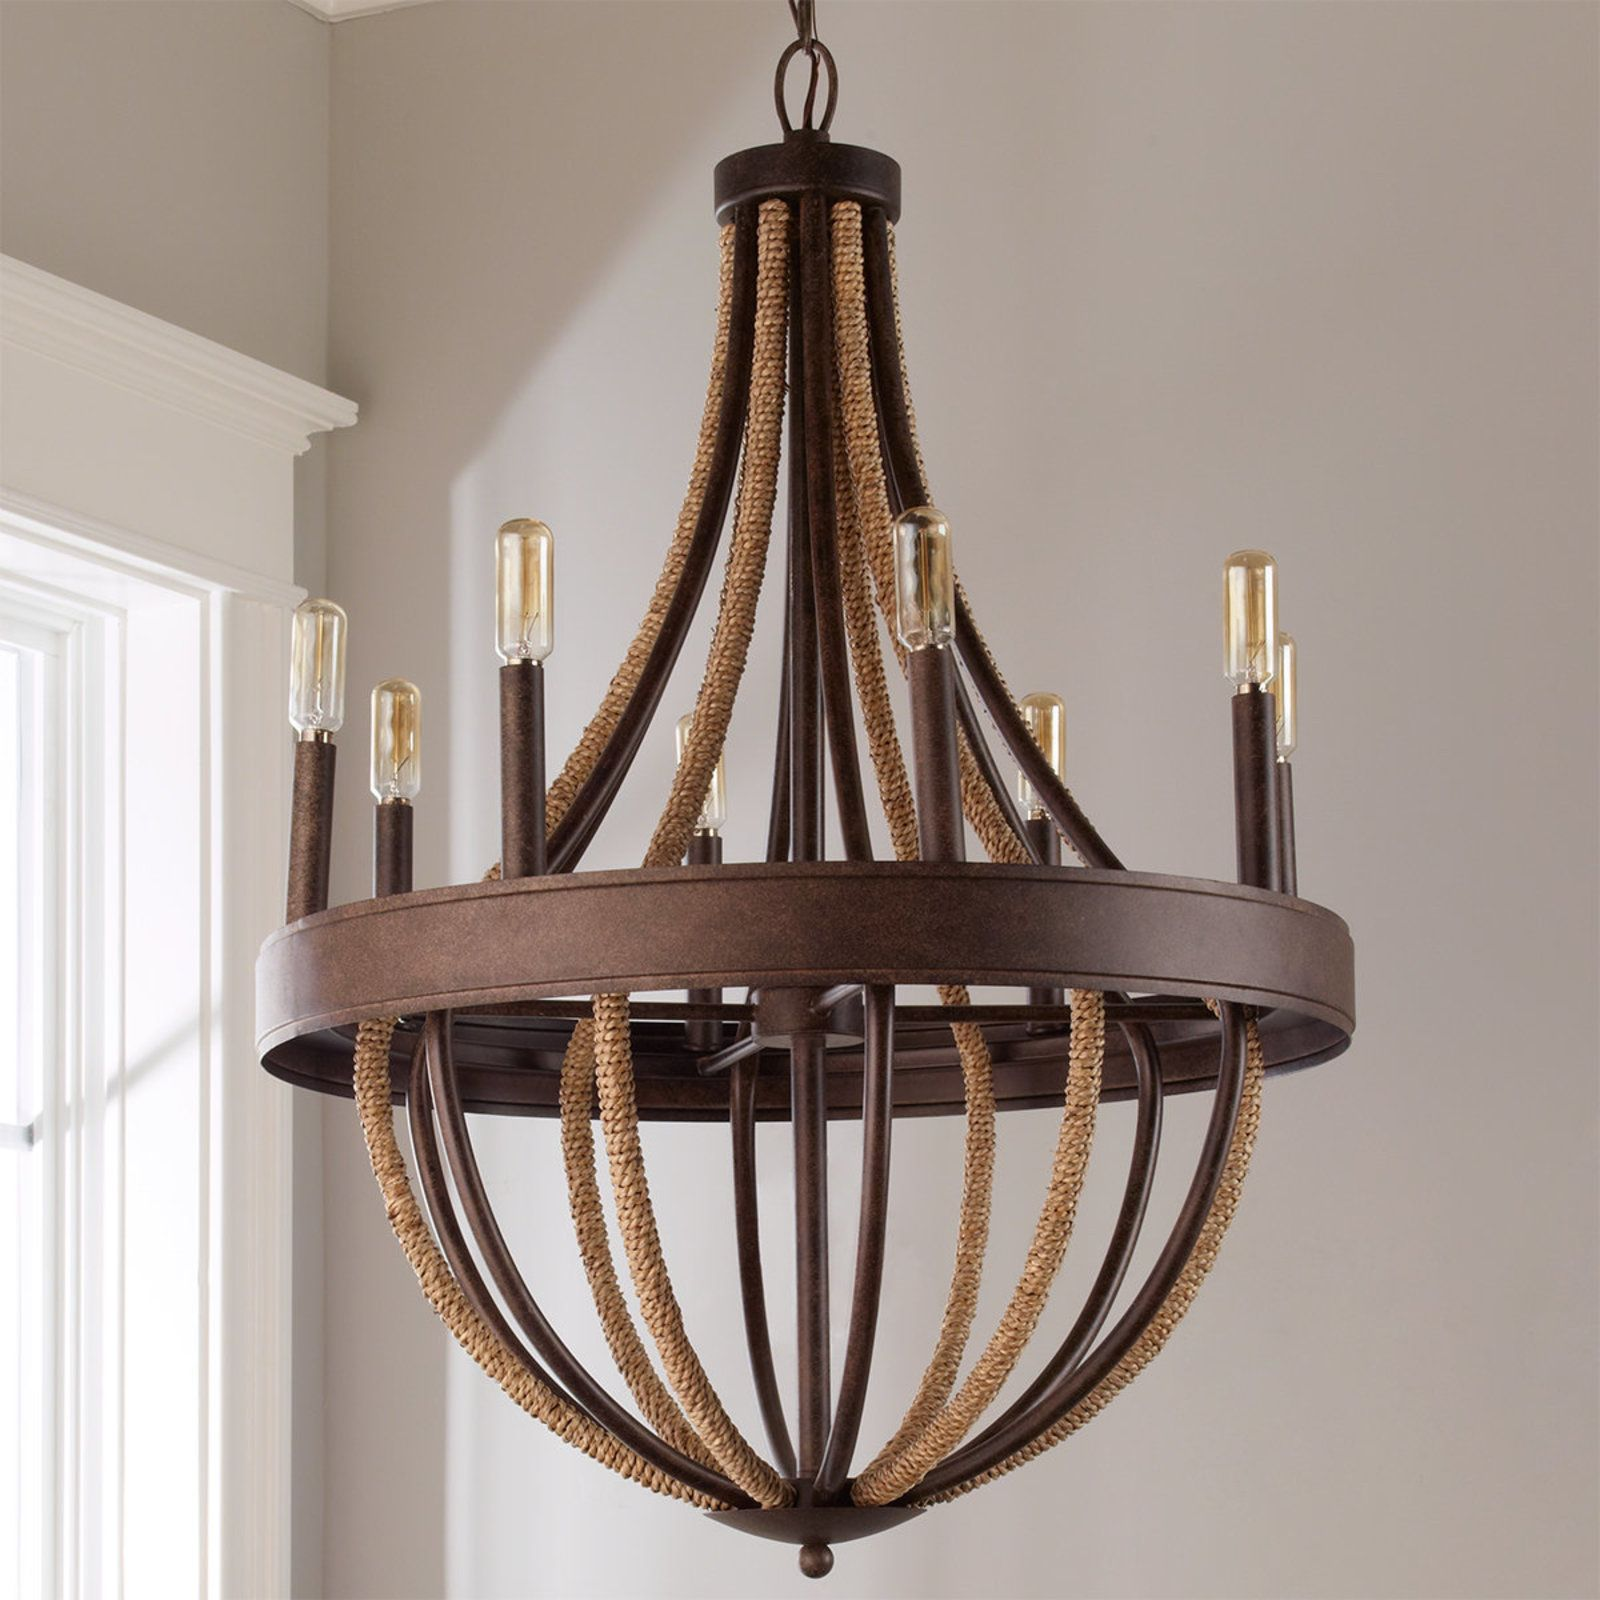 Rustic rope wrapped chandelier large bronze rope transitional home decor transitional kitchen transitional lighting